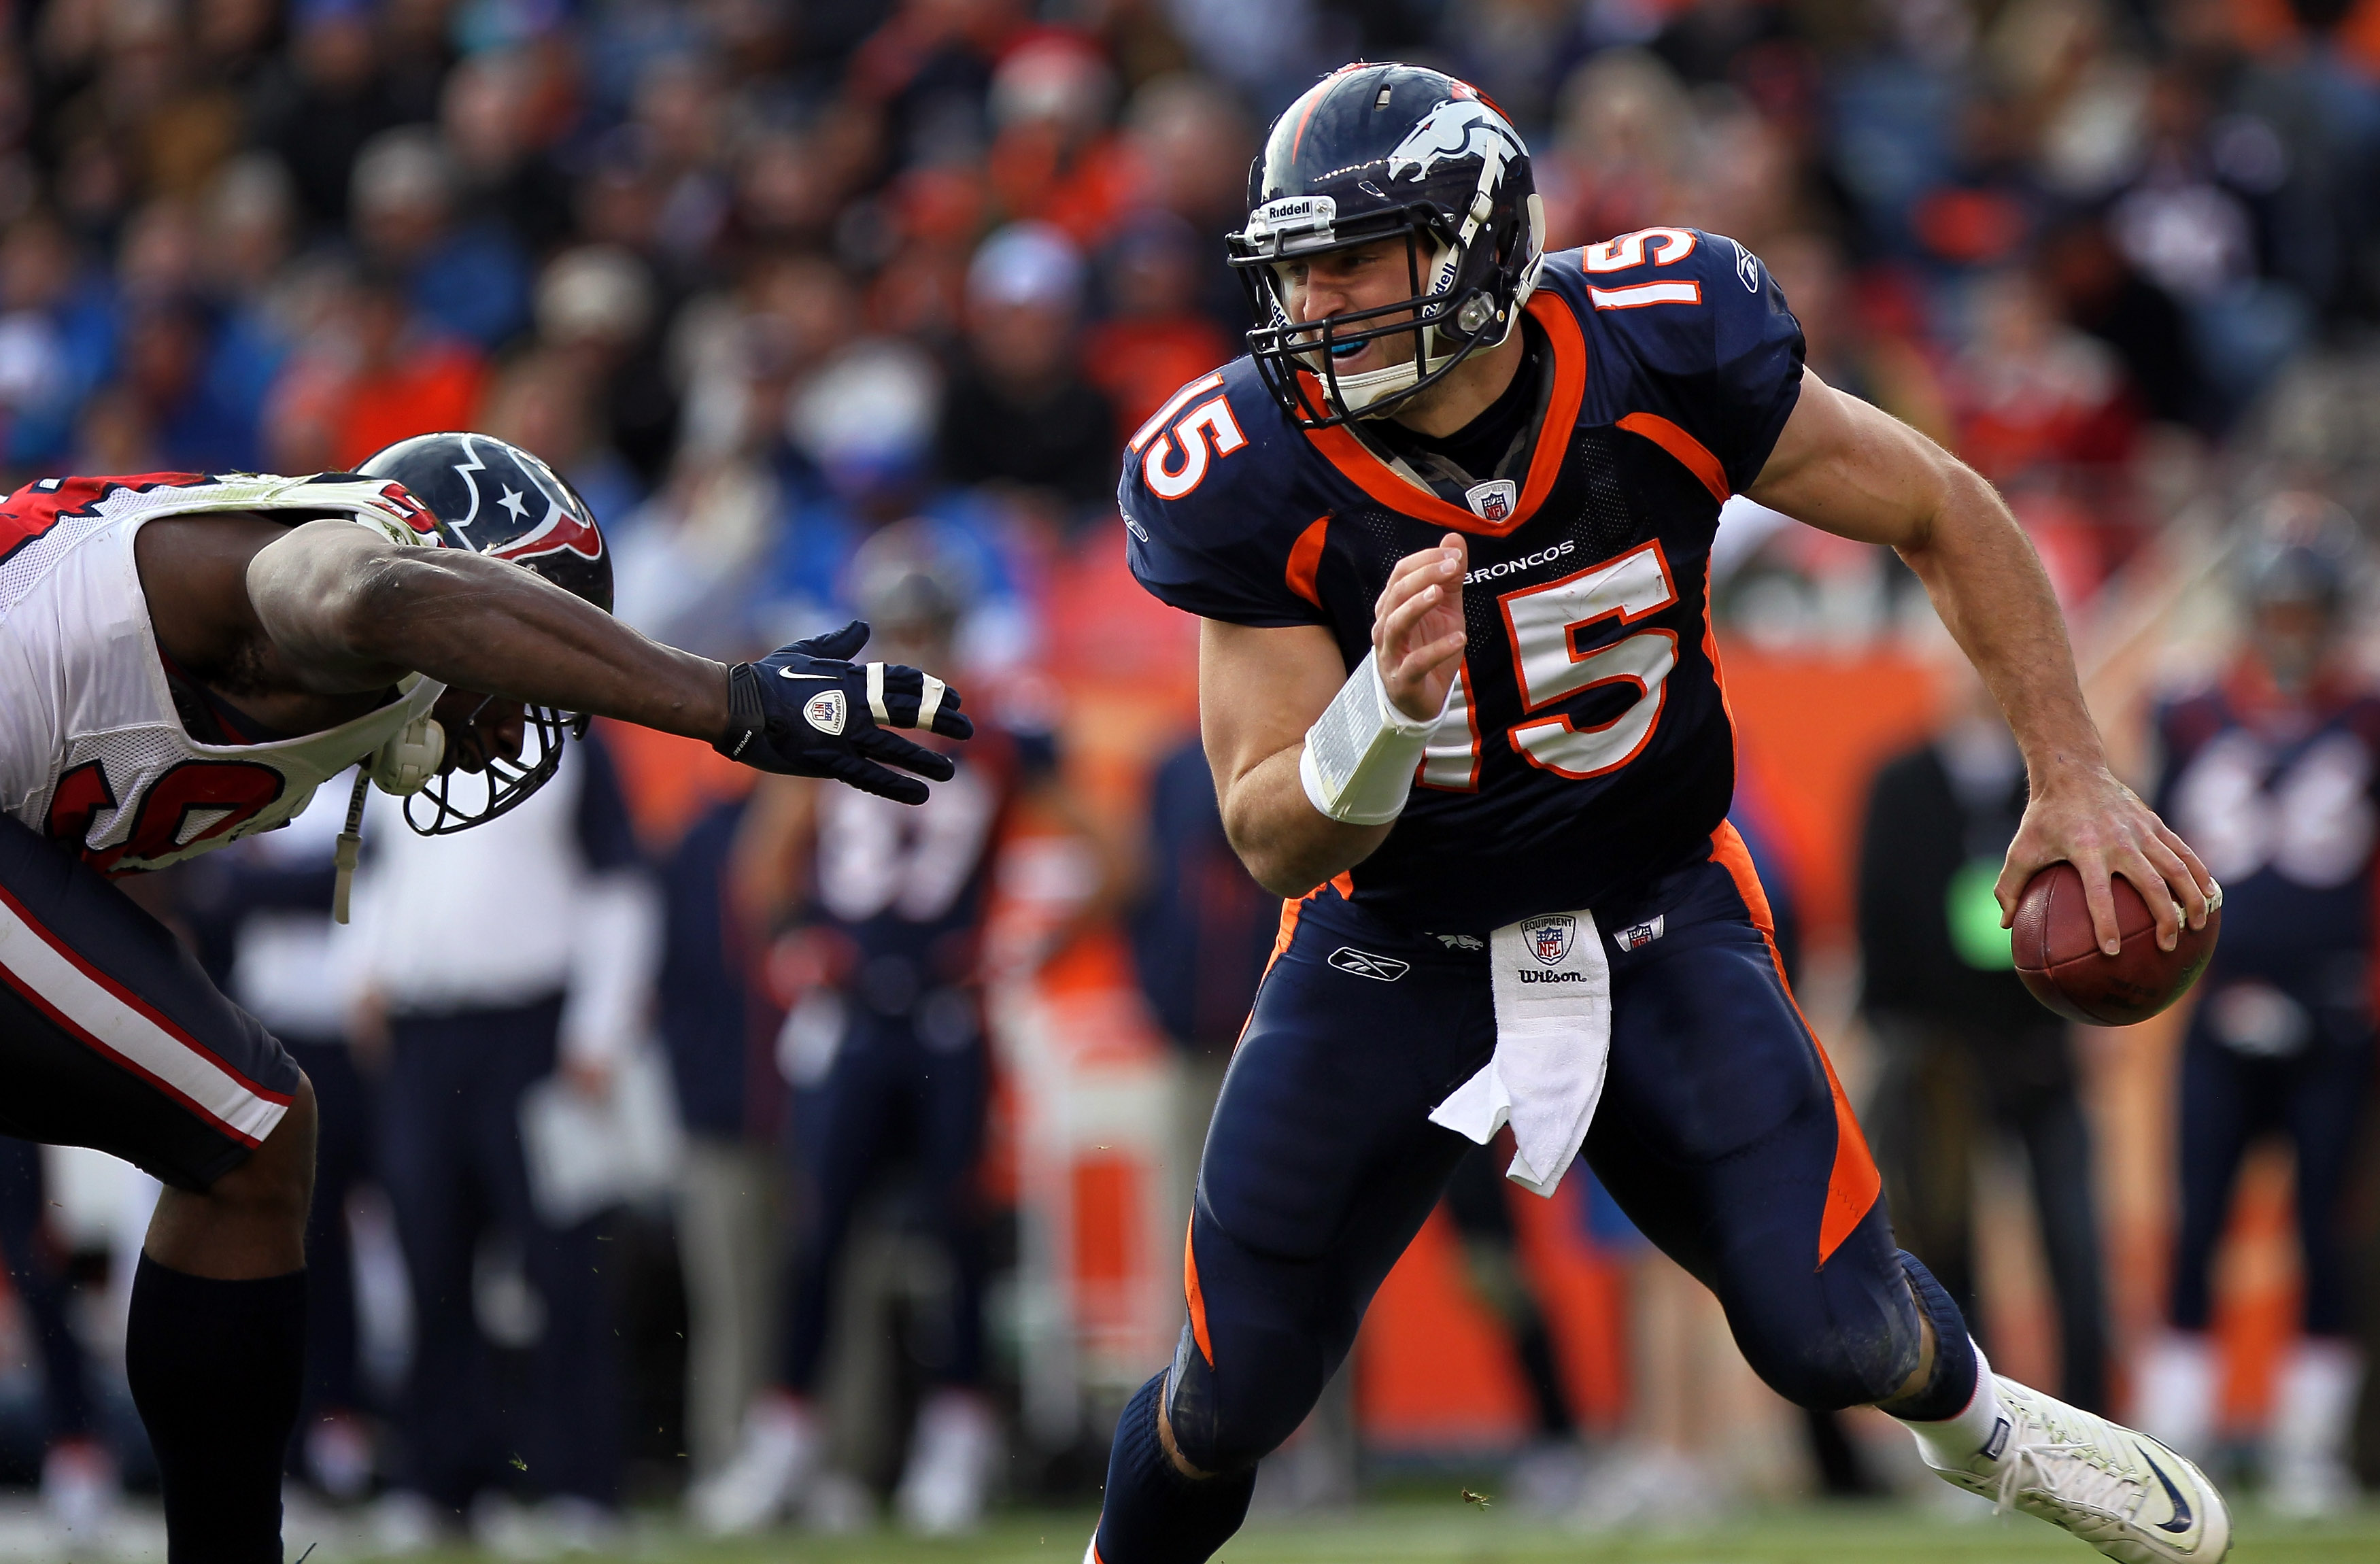 4b7fcb1c NFL's 20 Hottest Players: Tim Tebow, Troy Polamalu and More ...